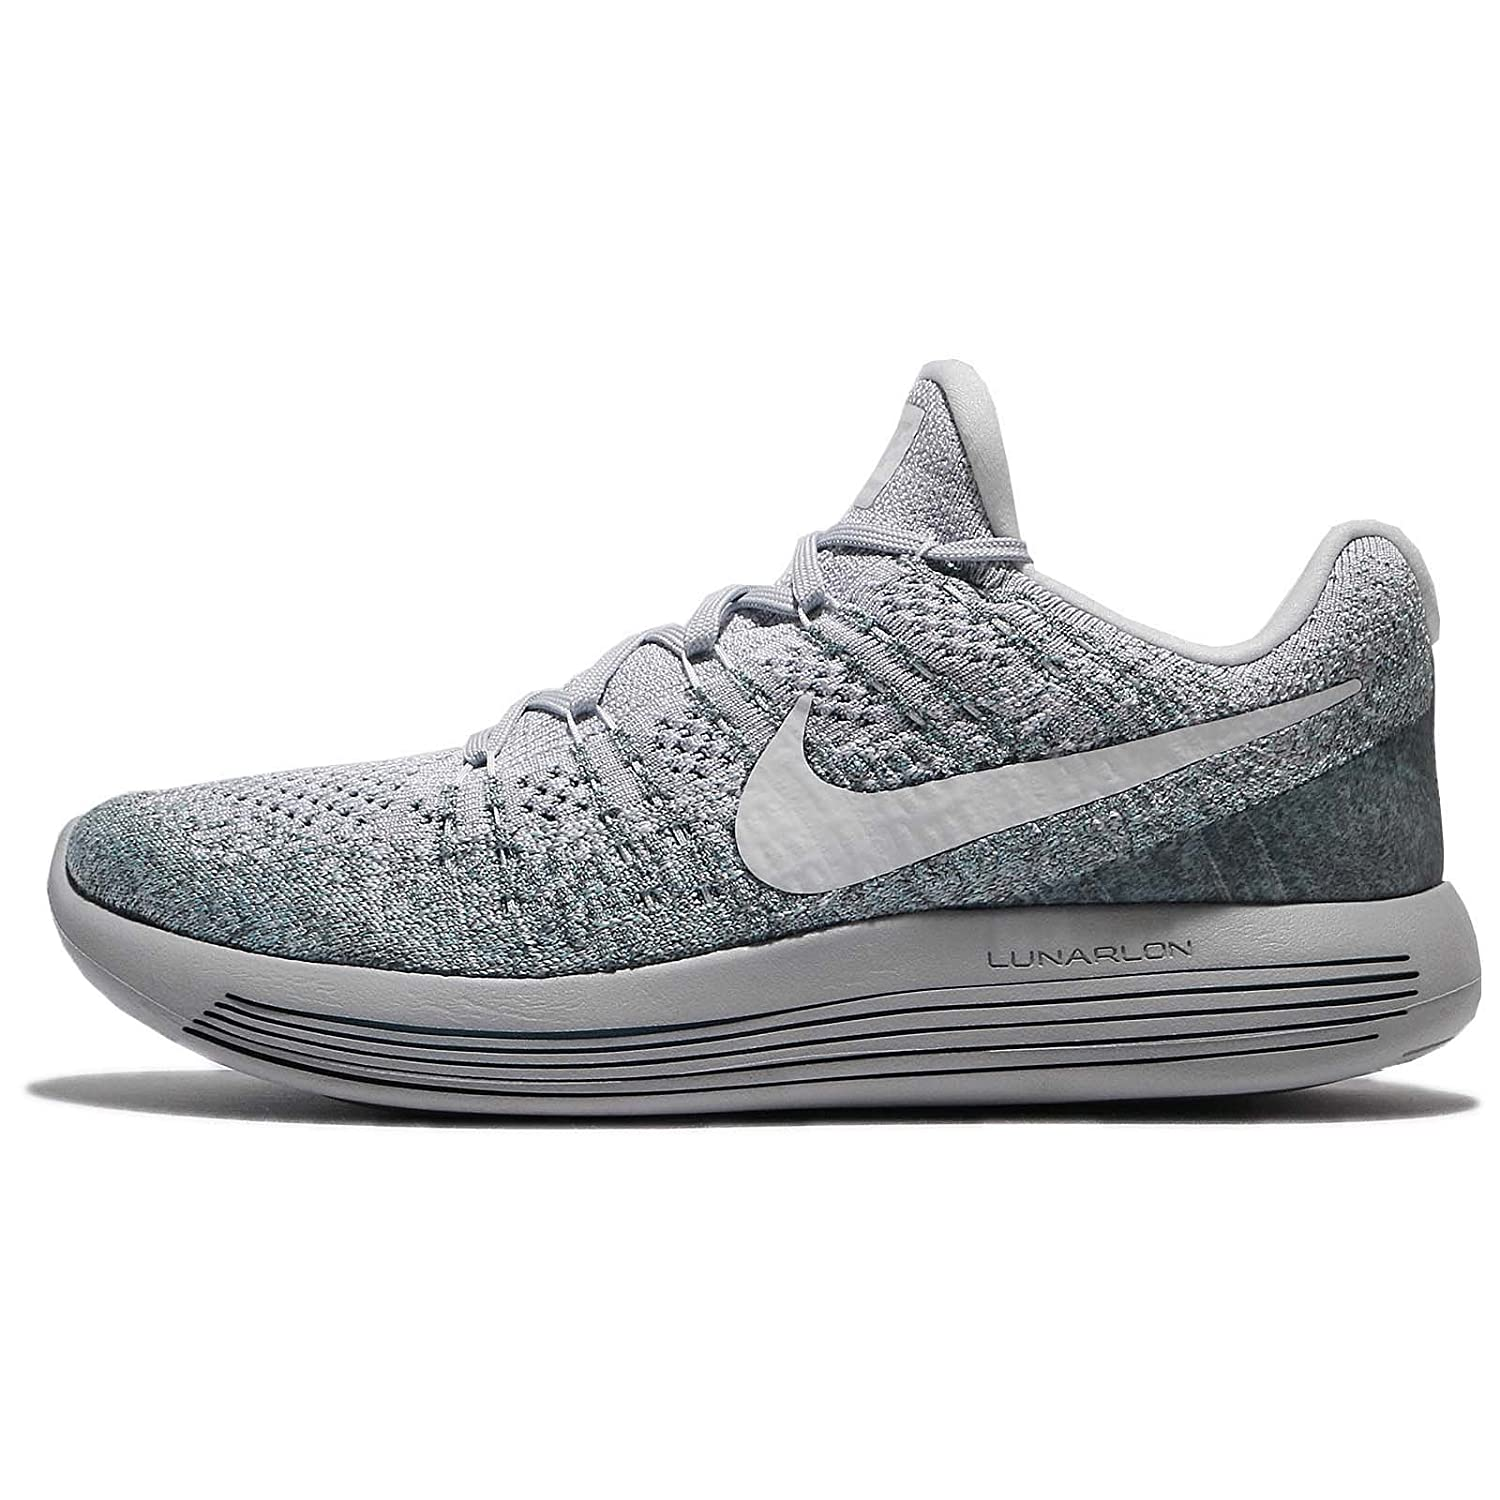 Size 863779-008 Nike Lunarepic Low Flyknit 2 Platinum Grey Mens Running Shoes